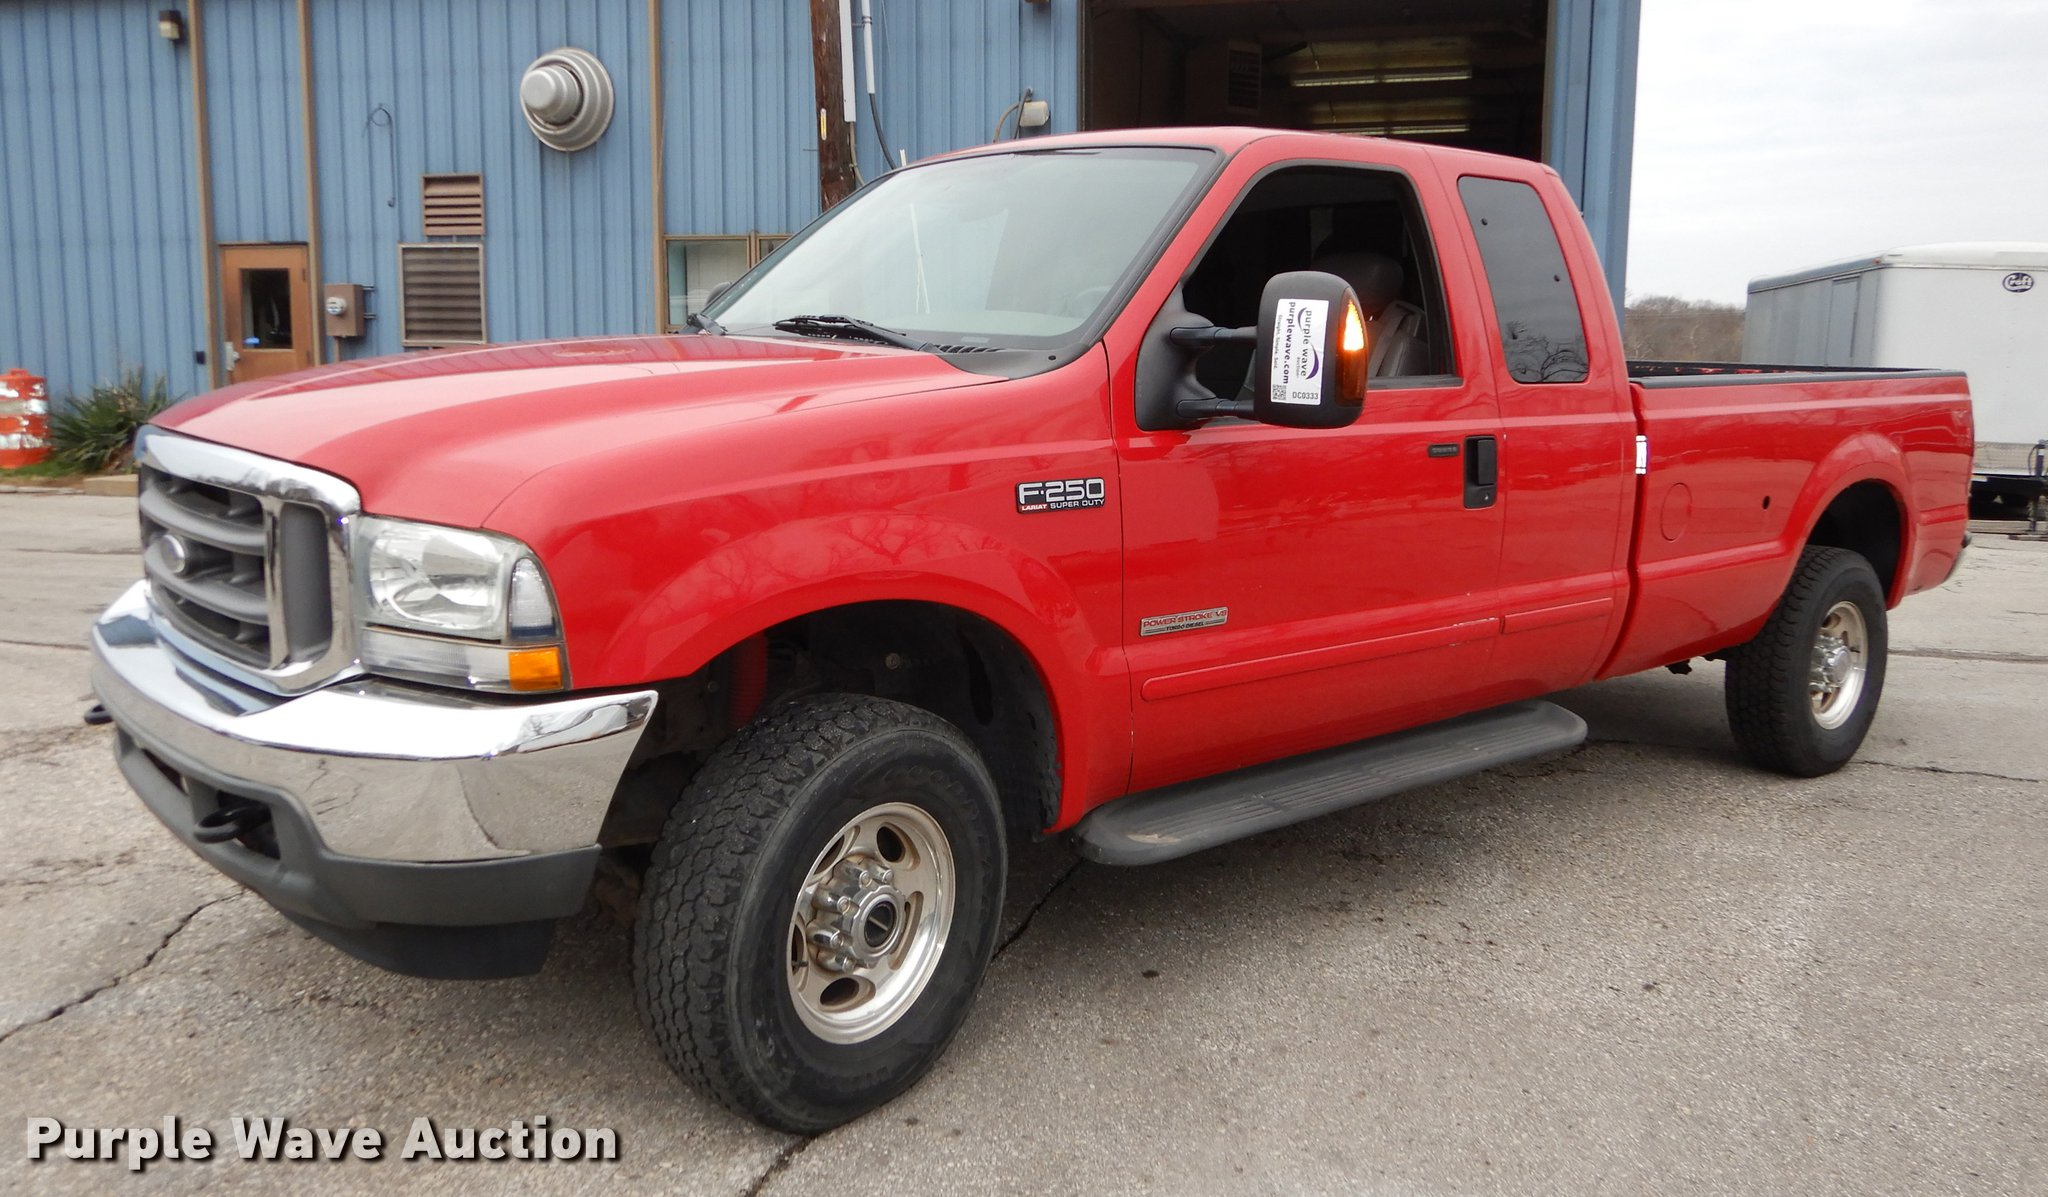 2004 Ford F250 Lariat Super Duty Supercab Pickup Truck Ite Dc0333 Image For Item